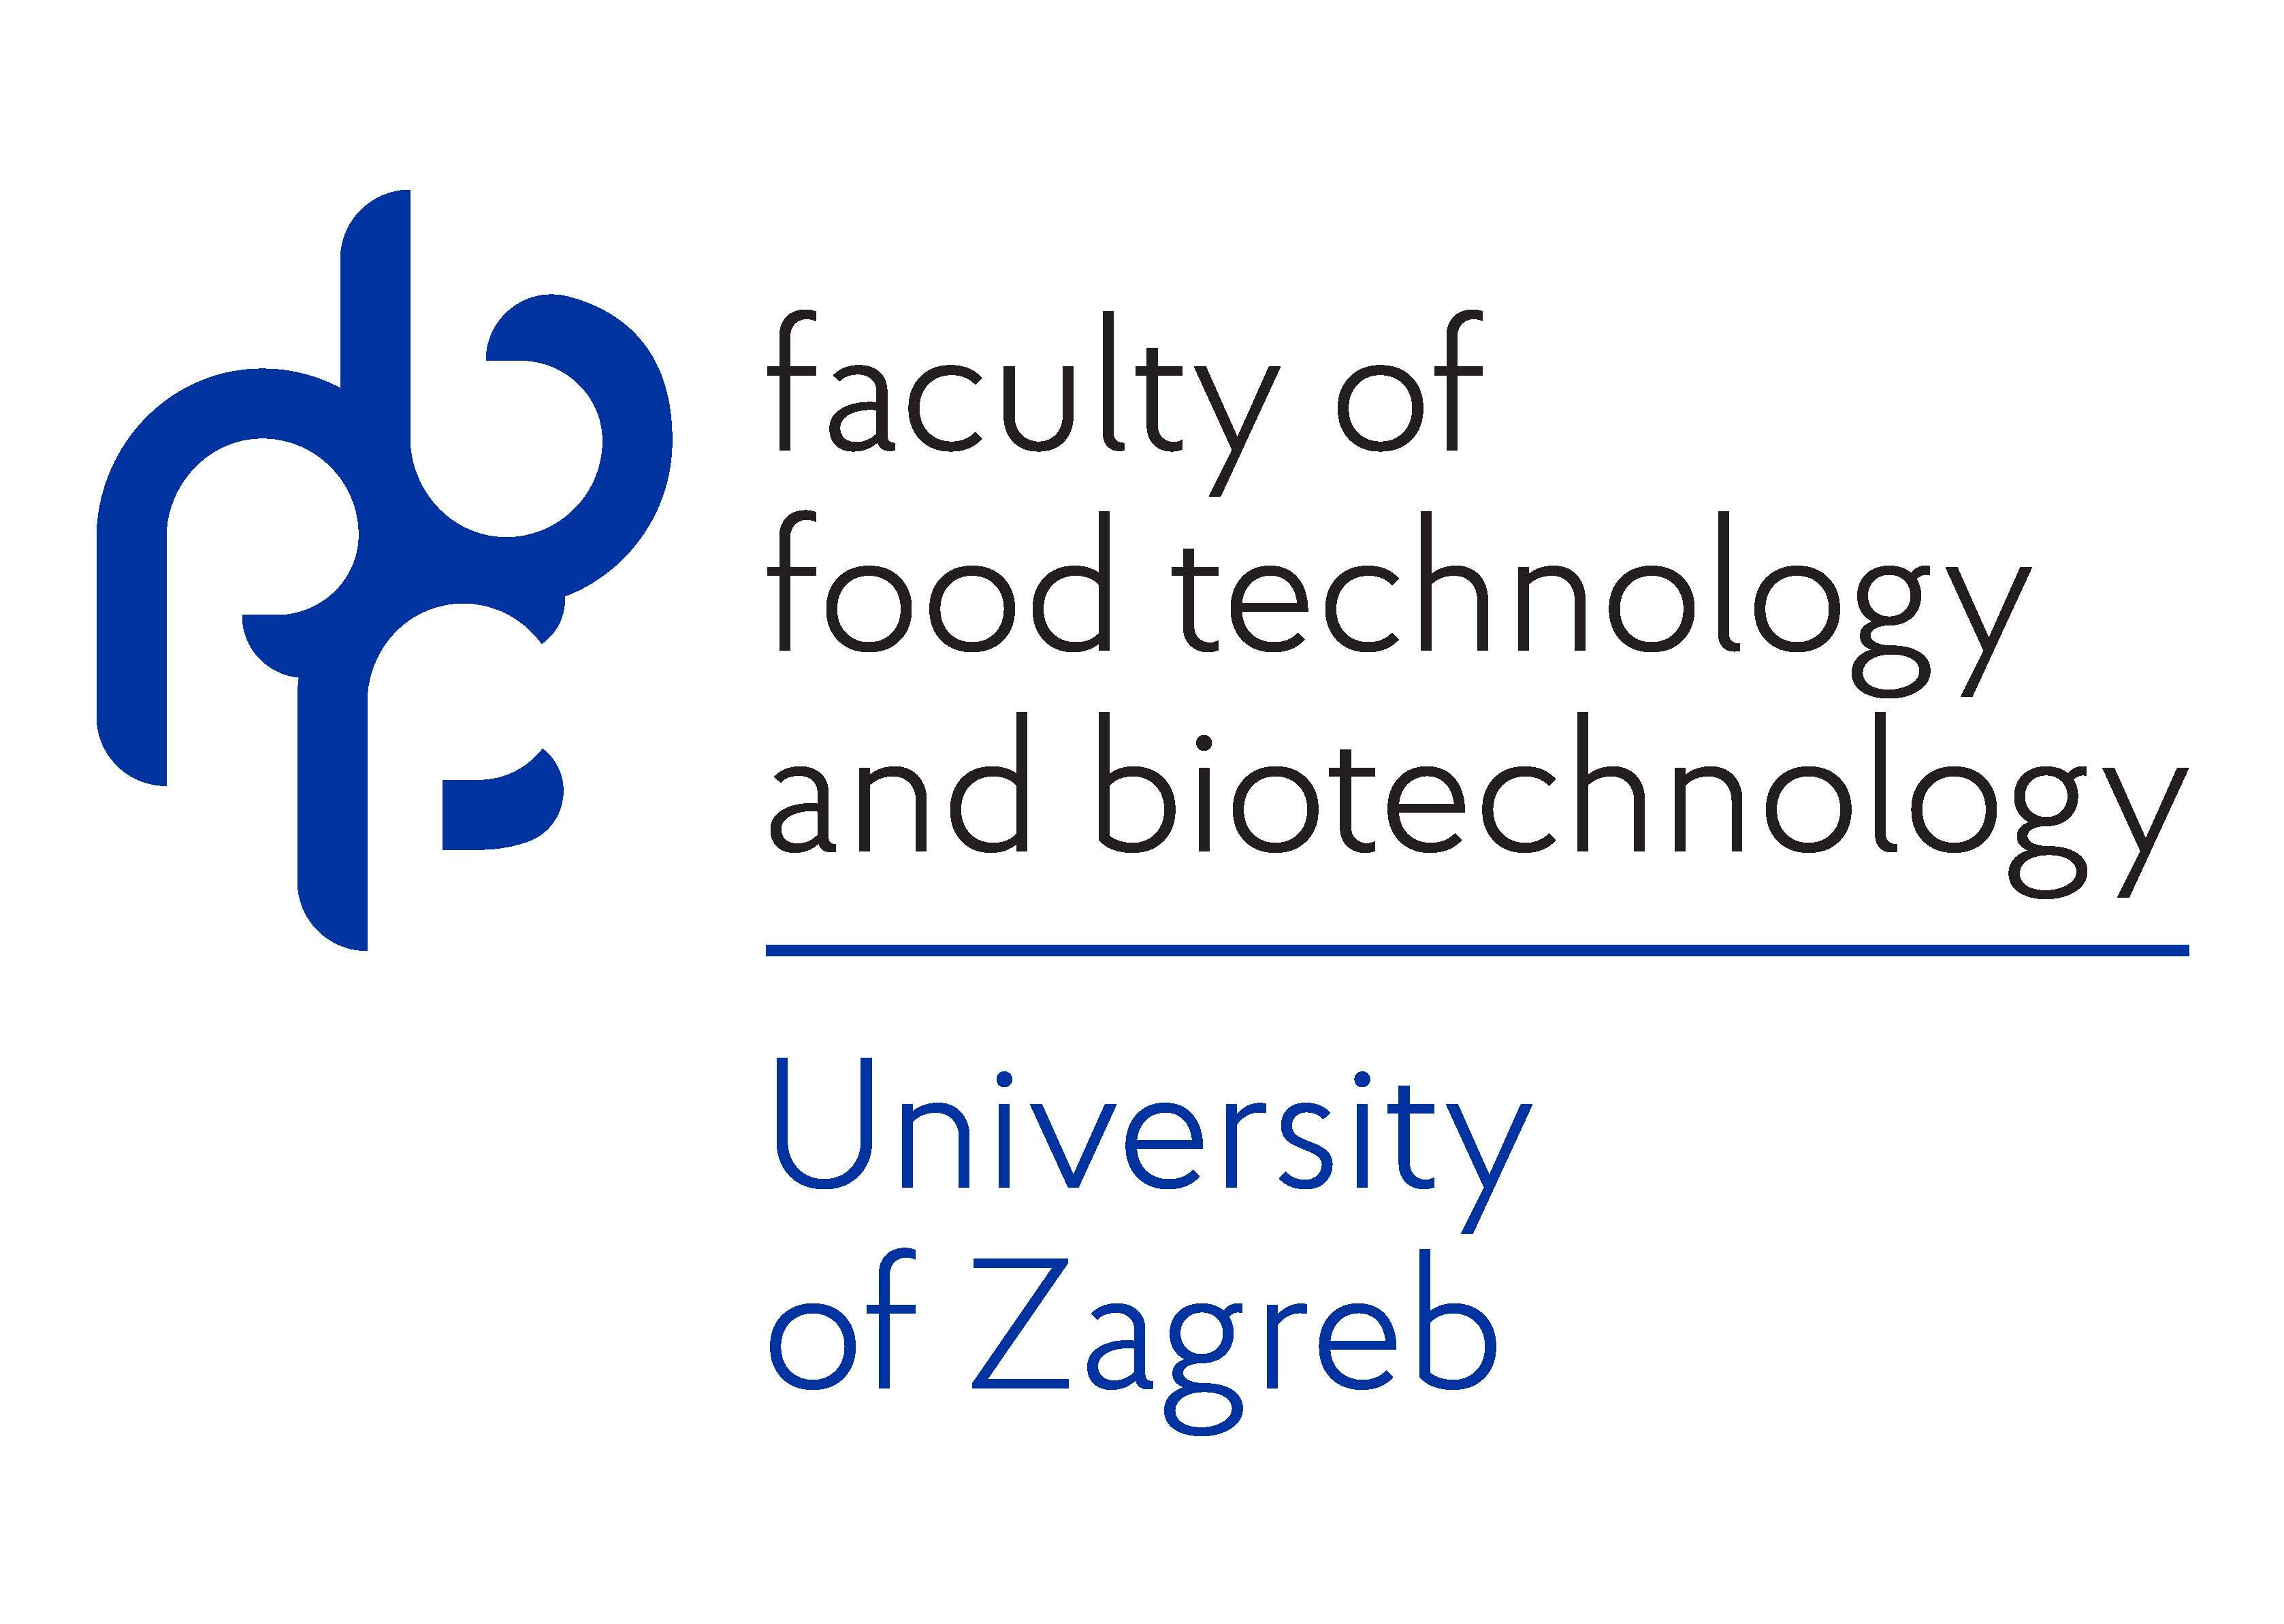 pbf logo en_university of zagreb_02